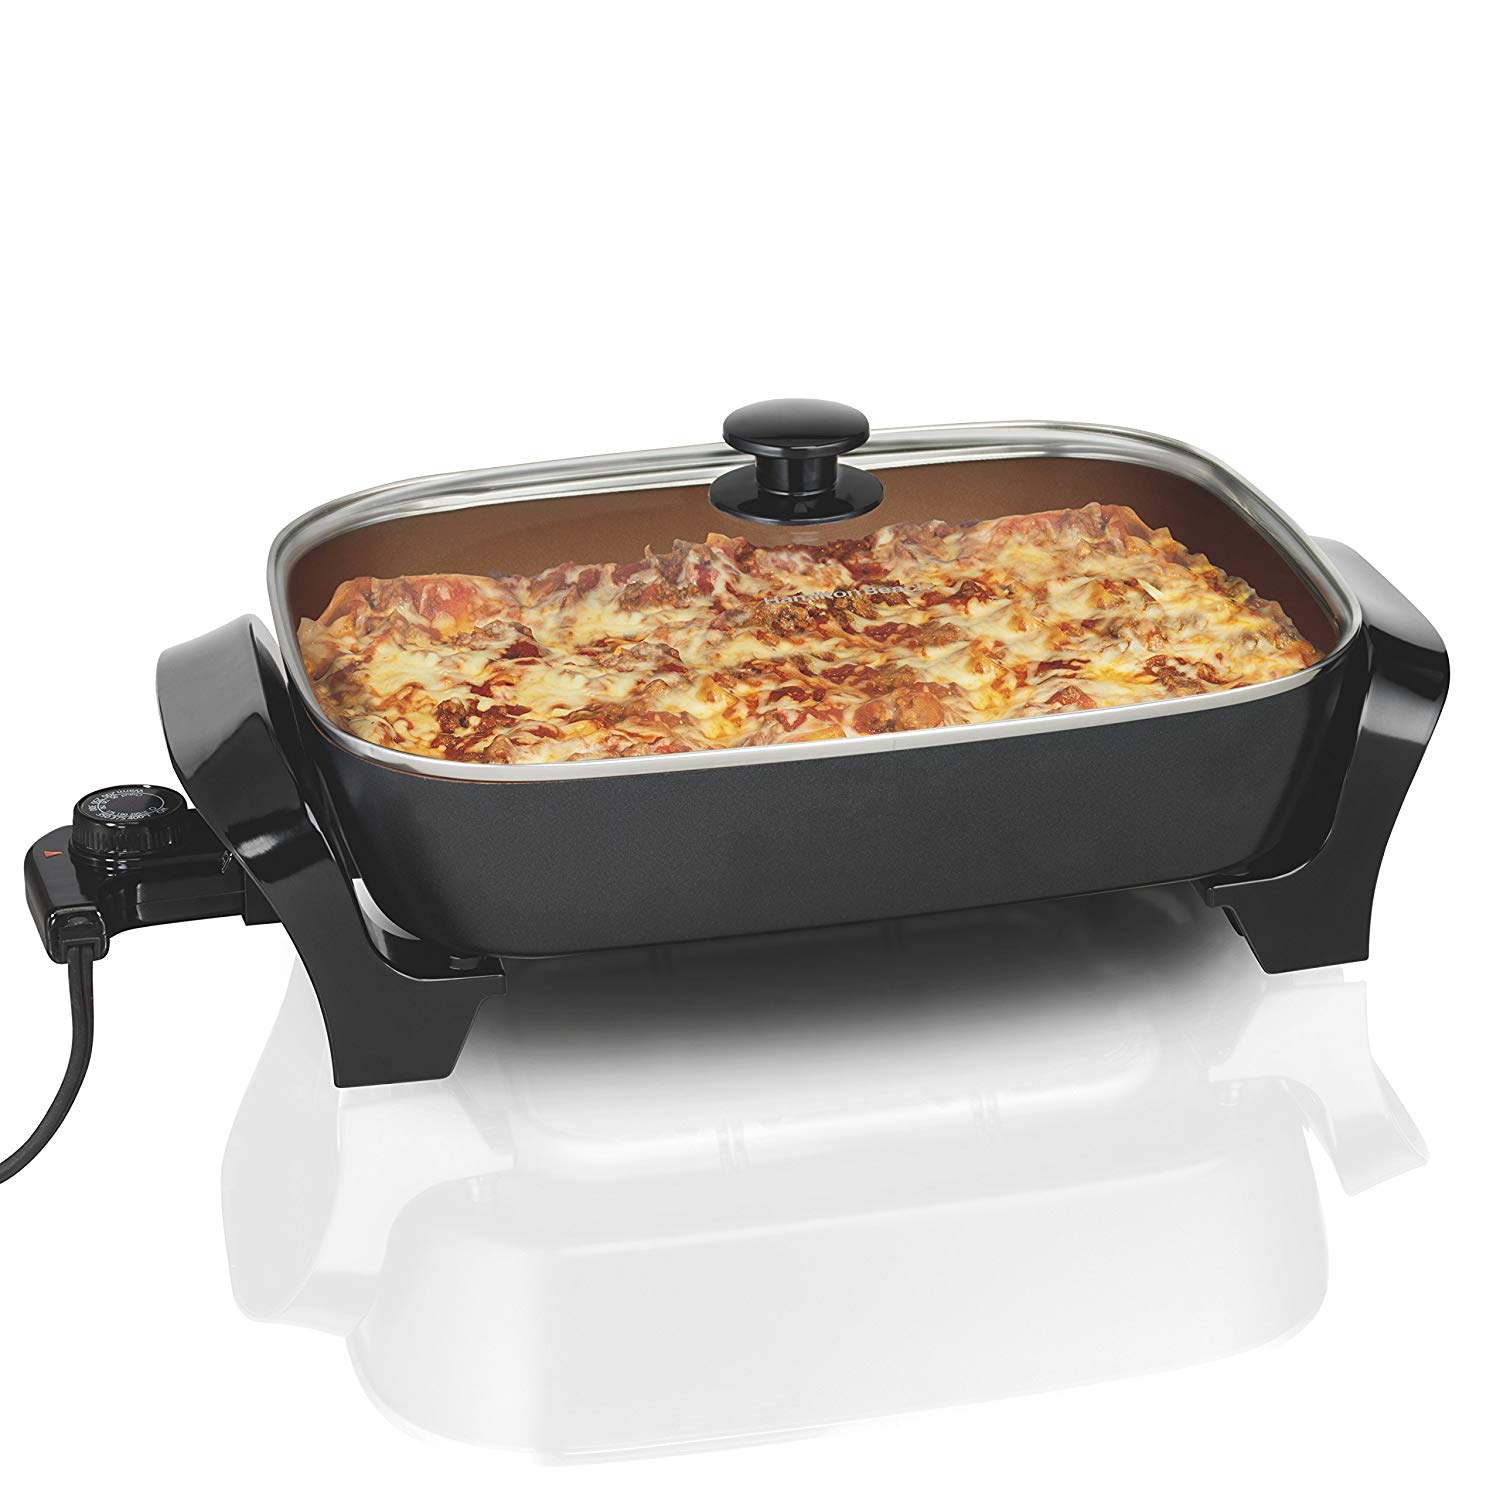 10 Best Electric Skillets of 2019 | Reviews 14